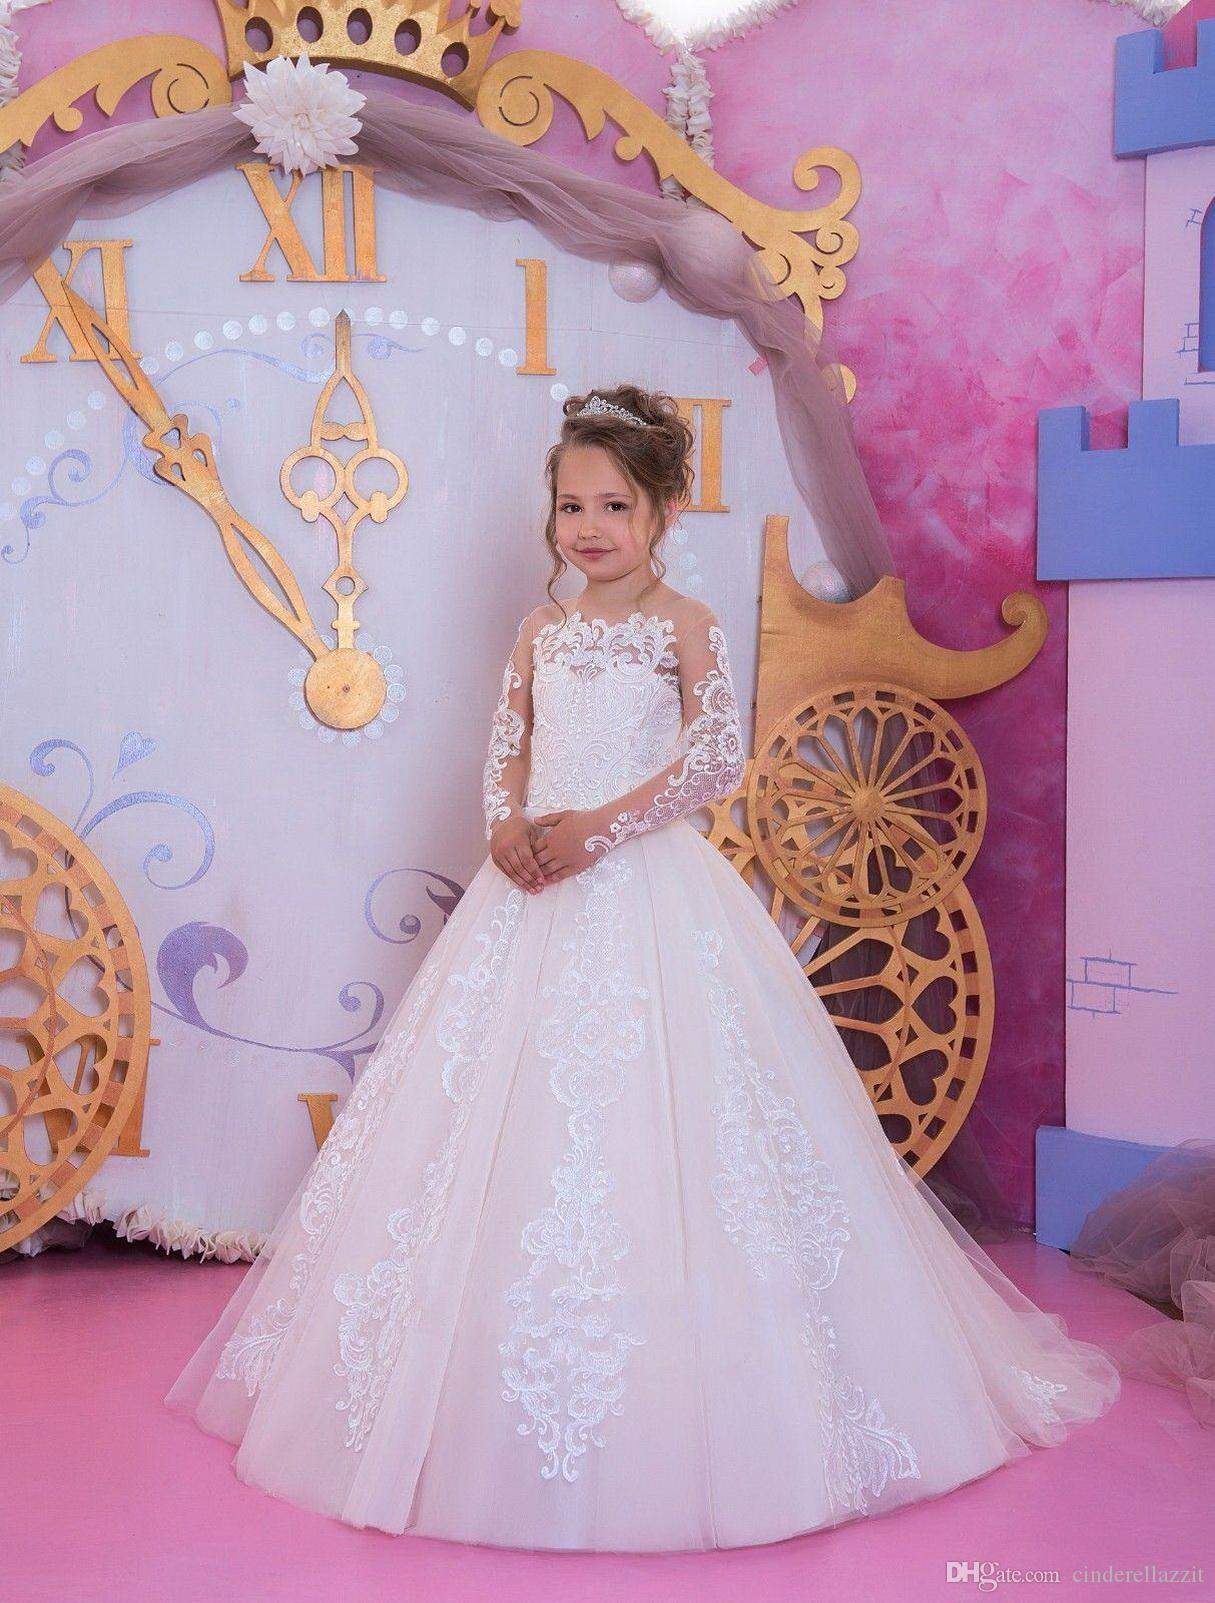 Captivating Belle Birthday Gown Costume In Shoulder Handmade Flower Tiered Chiffon  Pageant Dress Lovely Ball Gown Flower Girl Dress Flower Girl Dresses With  Tulle ...